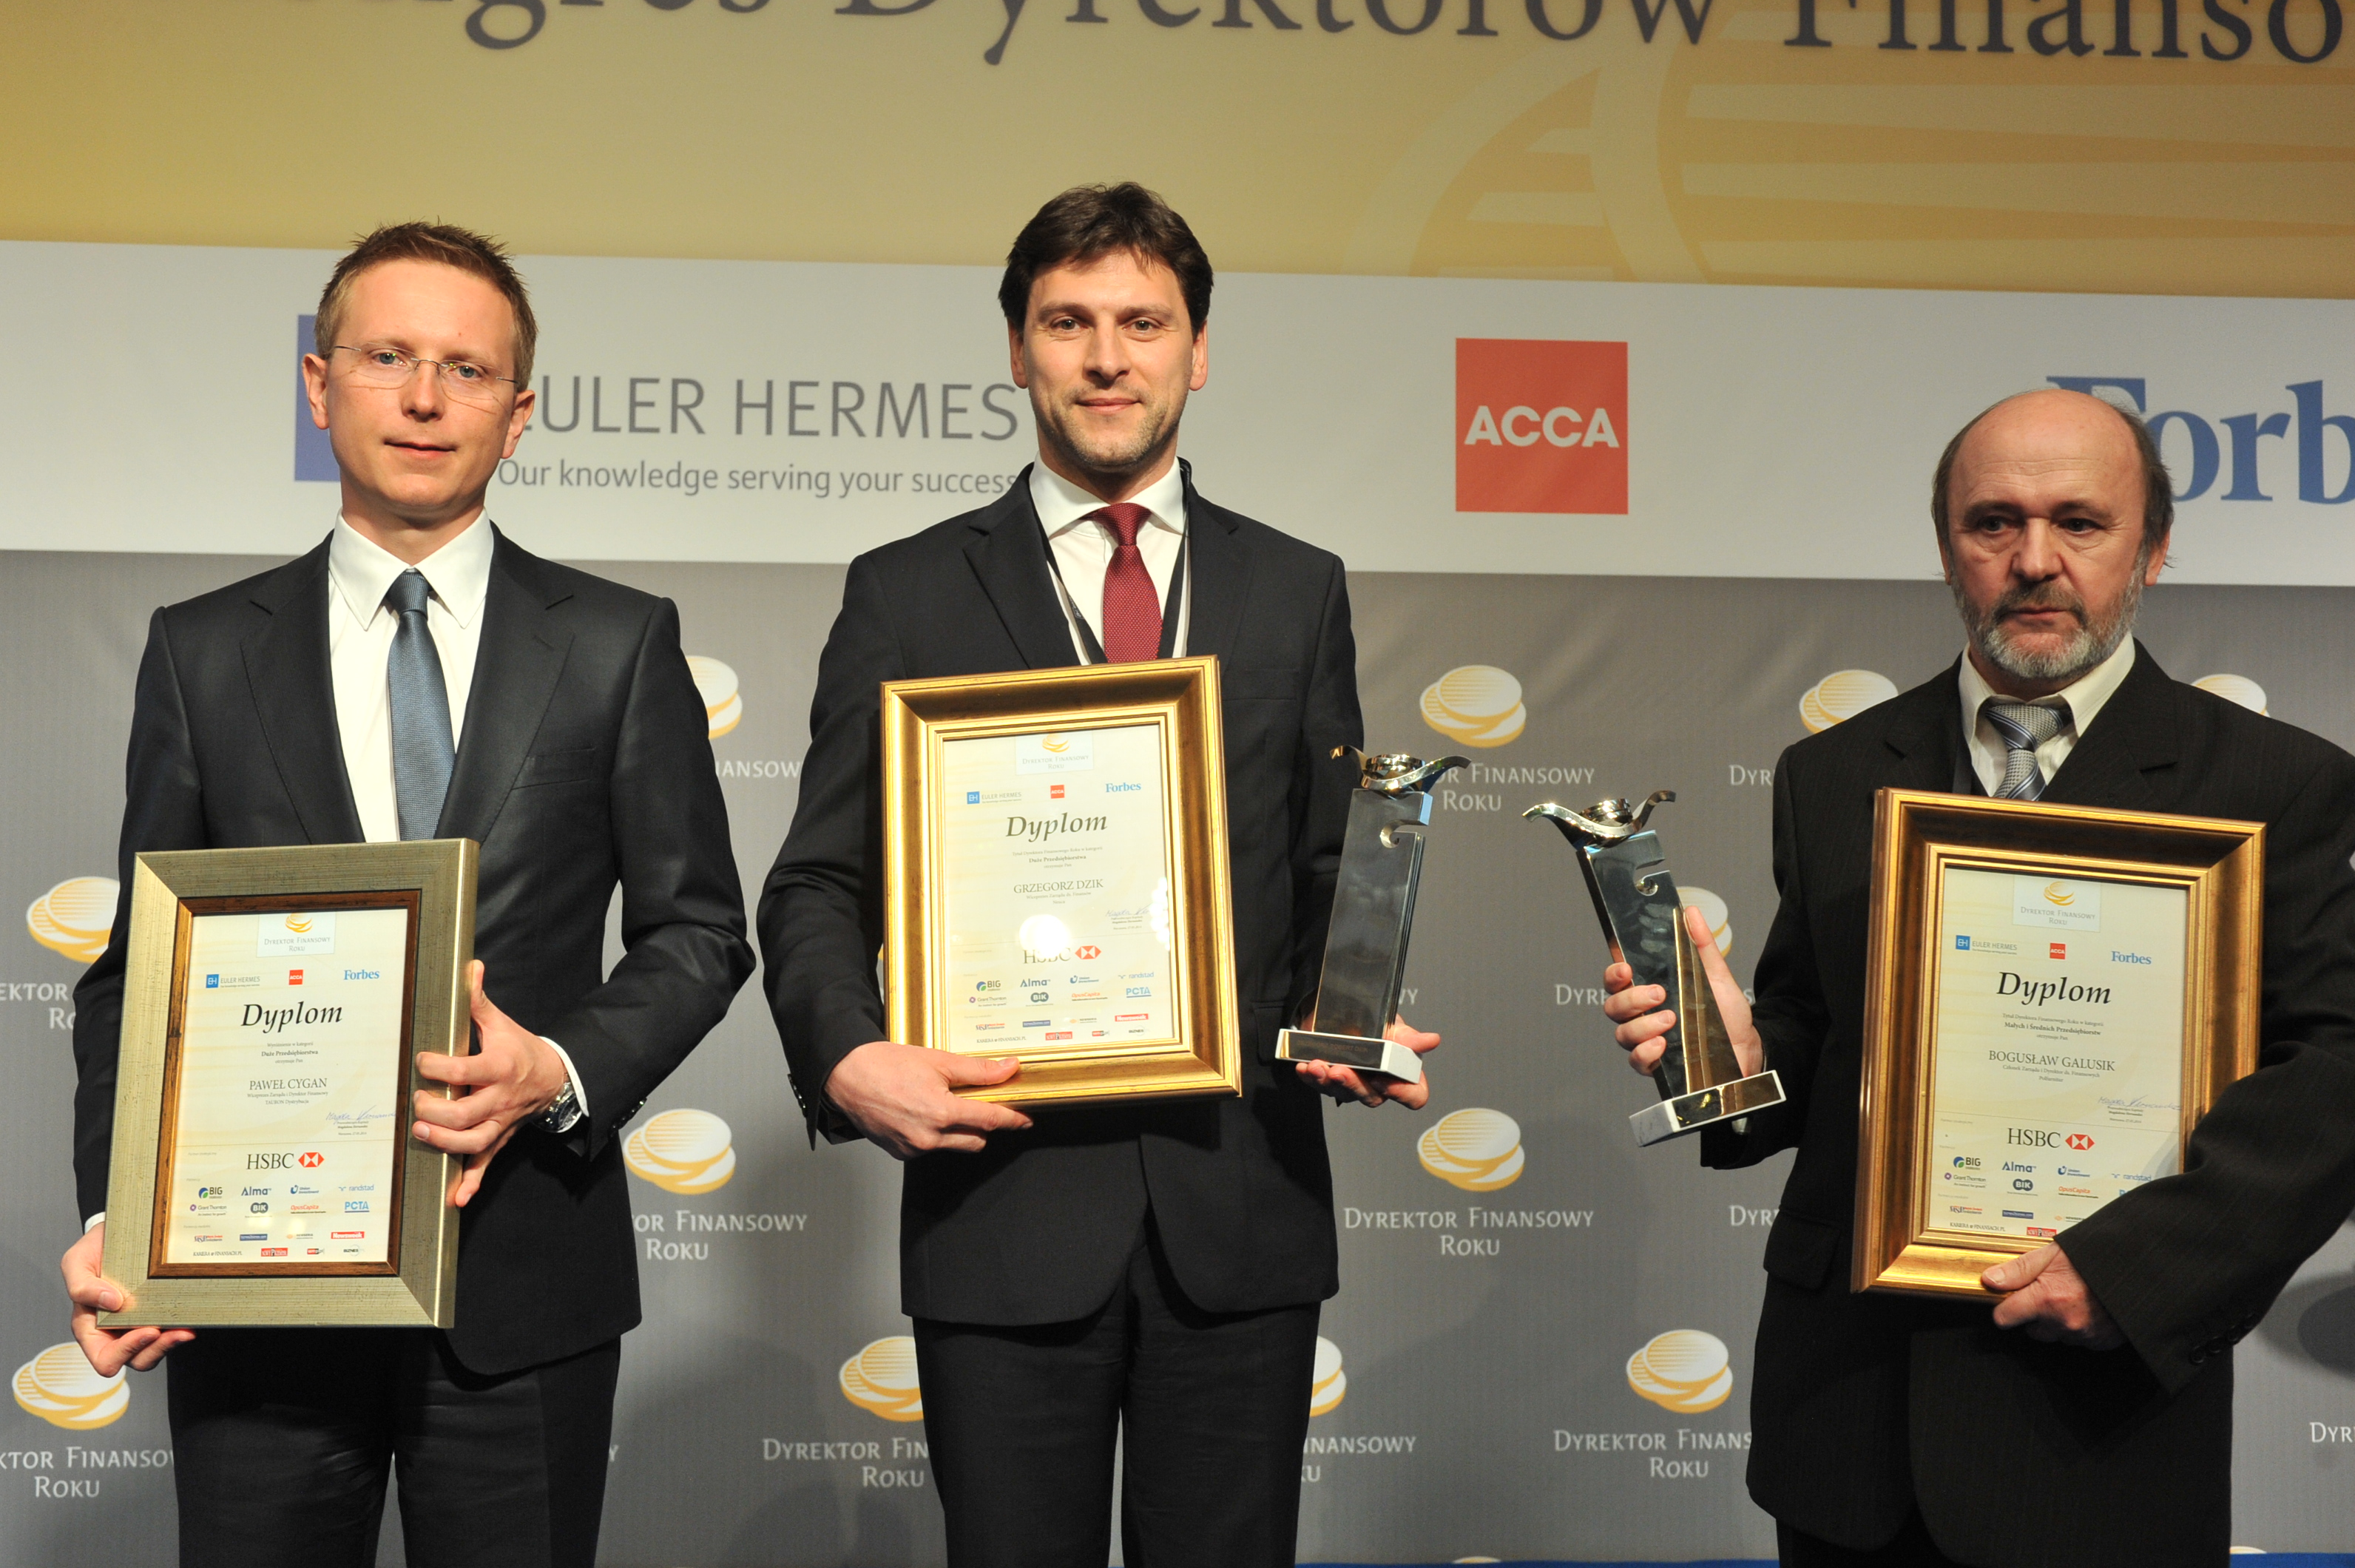 CFOs of The Year come from Neuca and Polfurnitur